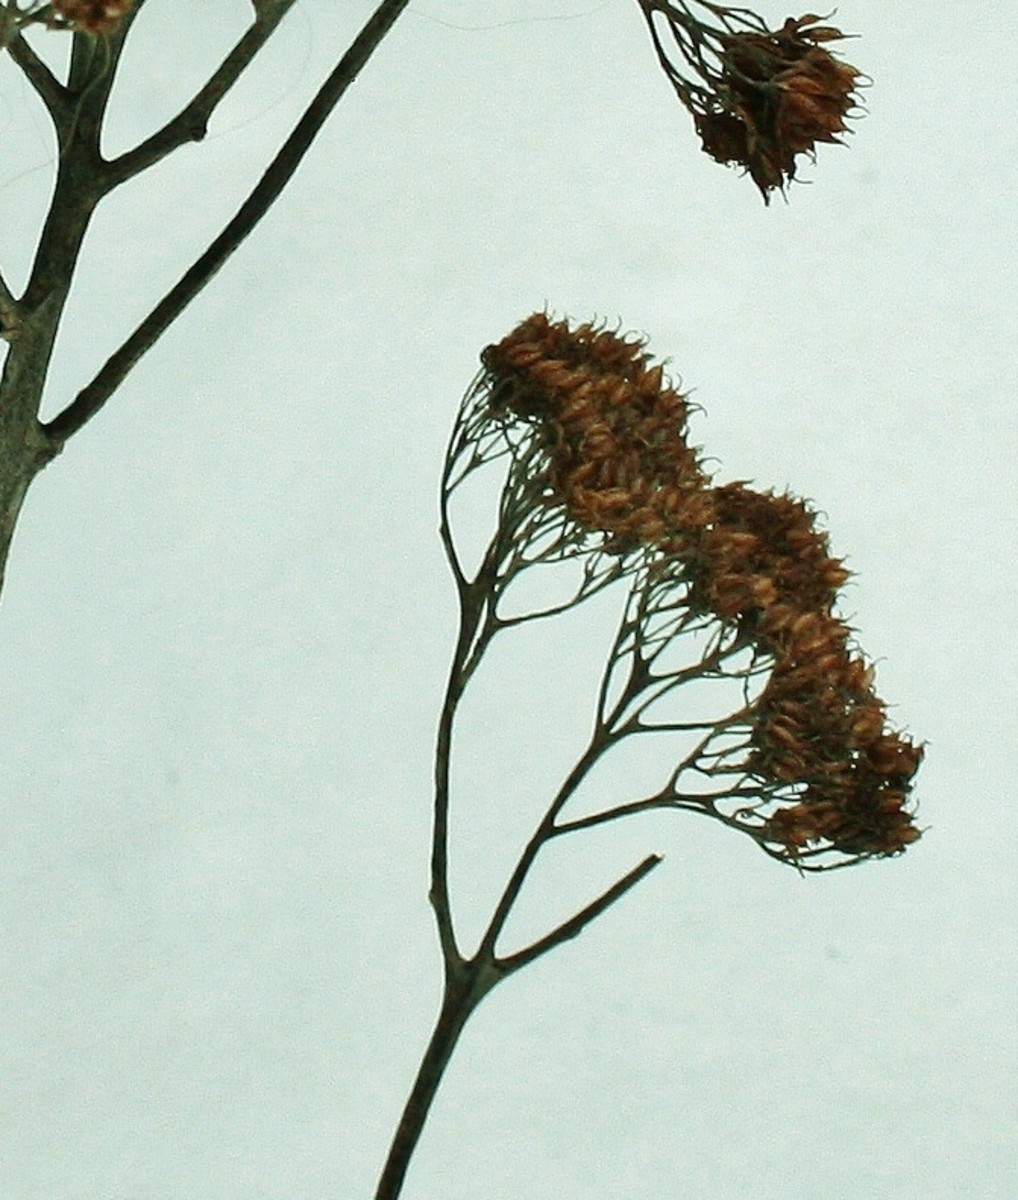 During the winter, this plant turns a rich shade of rust.